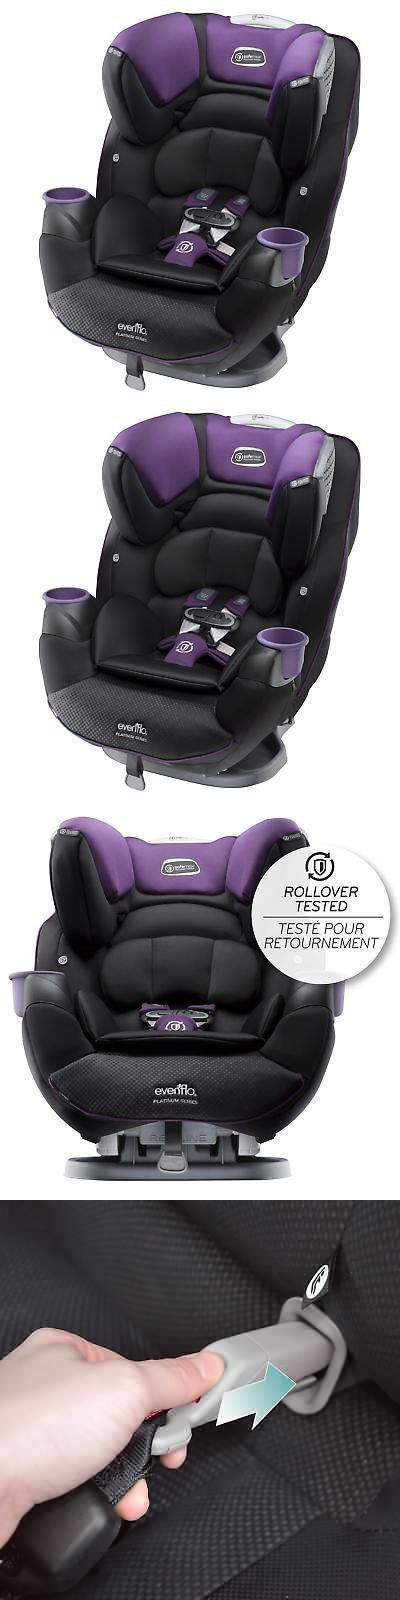 Car Safety Seats 66692 Evenflo Platinum Safemax All In One Seat Madalynn BUY IT NOW ONLY 17199 On EBay